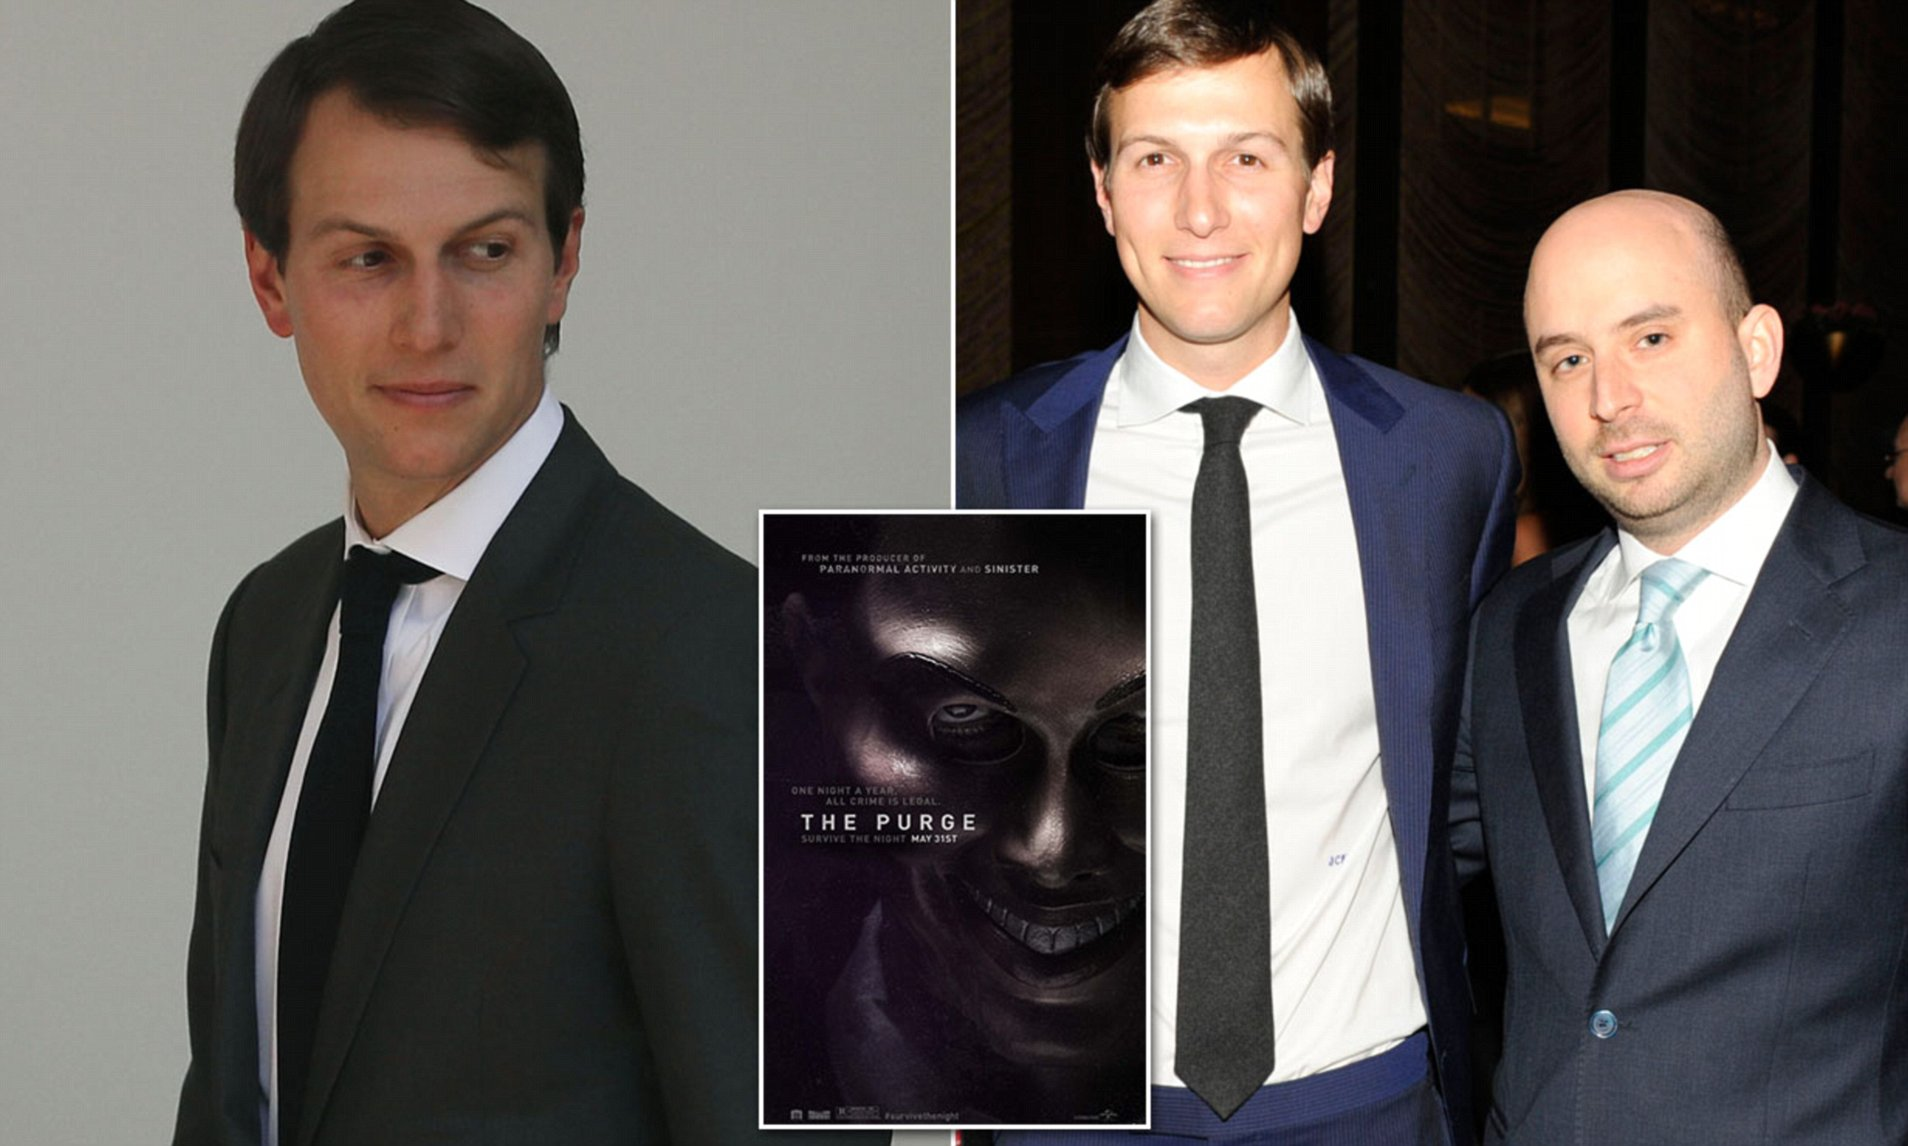 https://www.martinvrijland.nl/wp-content/uploads/2020/06/Purge-Jared-Kushner.jpg